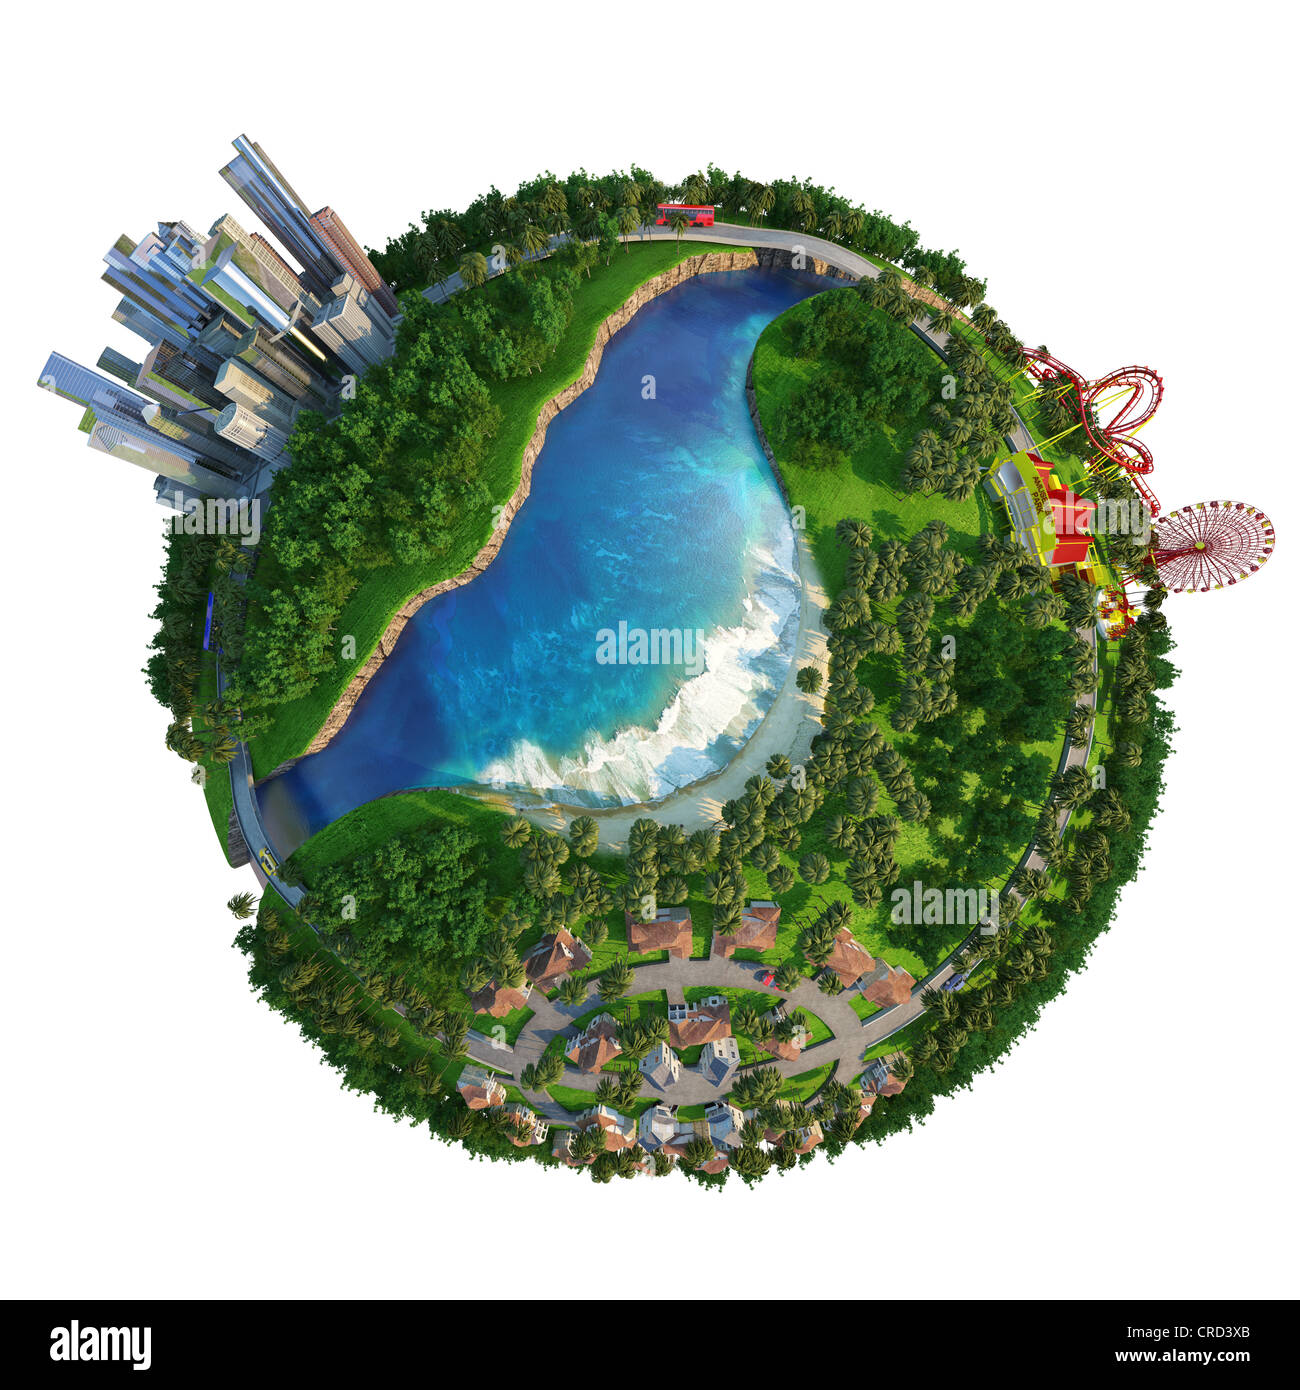 concept globe for work, home and leisure time - Stock Image